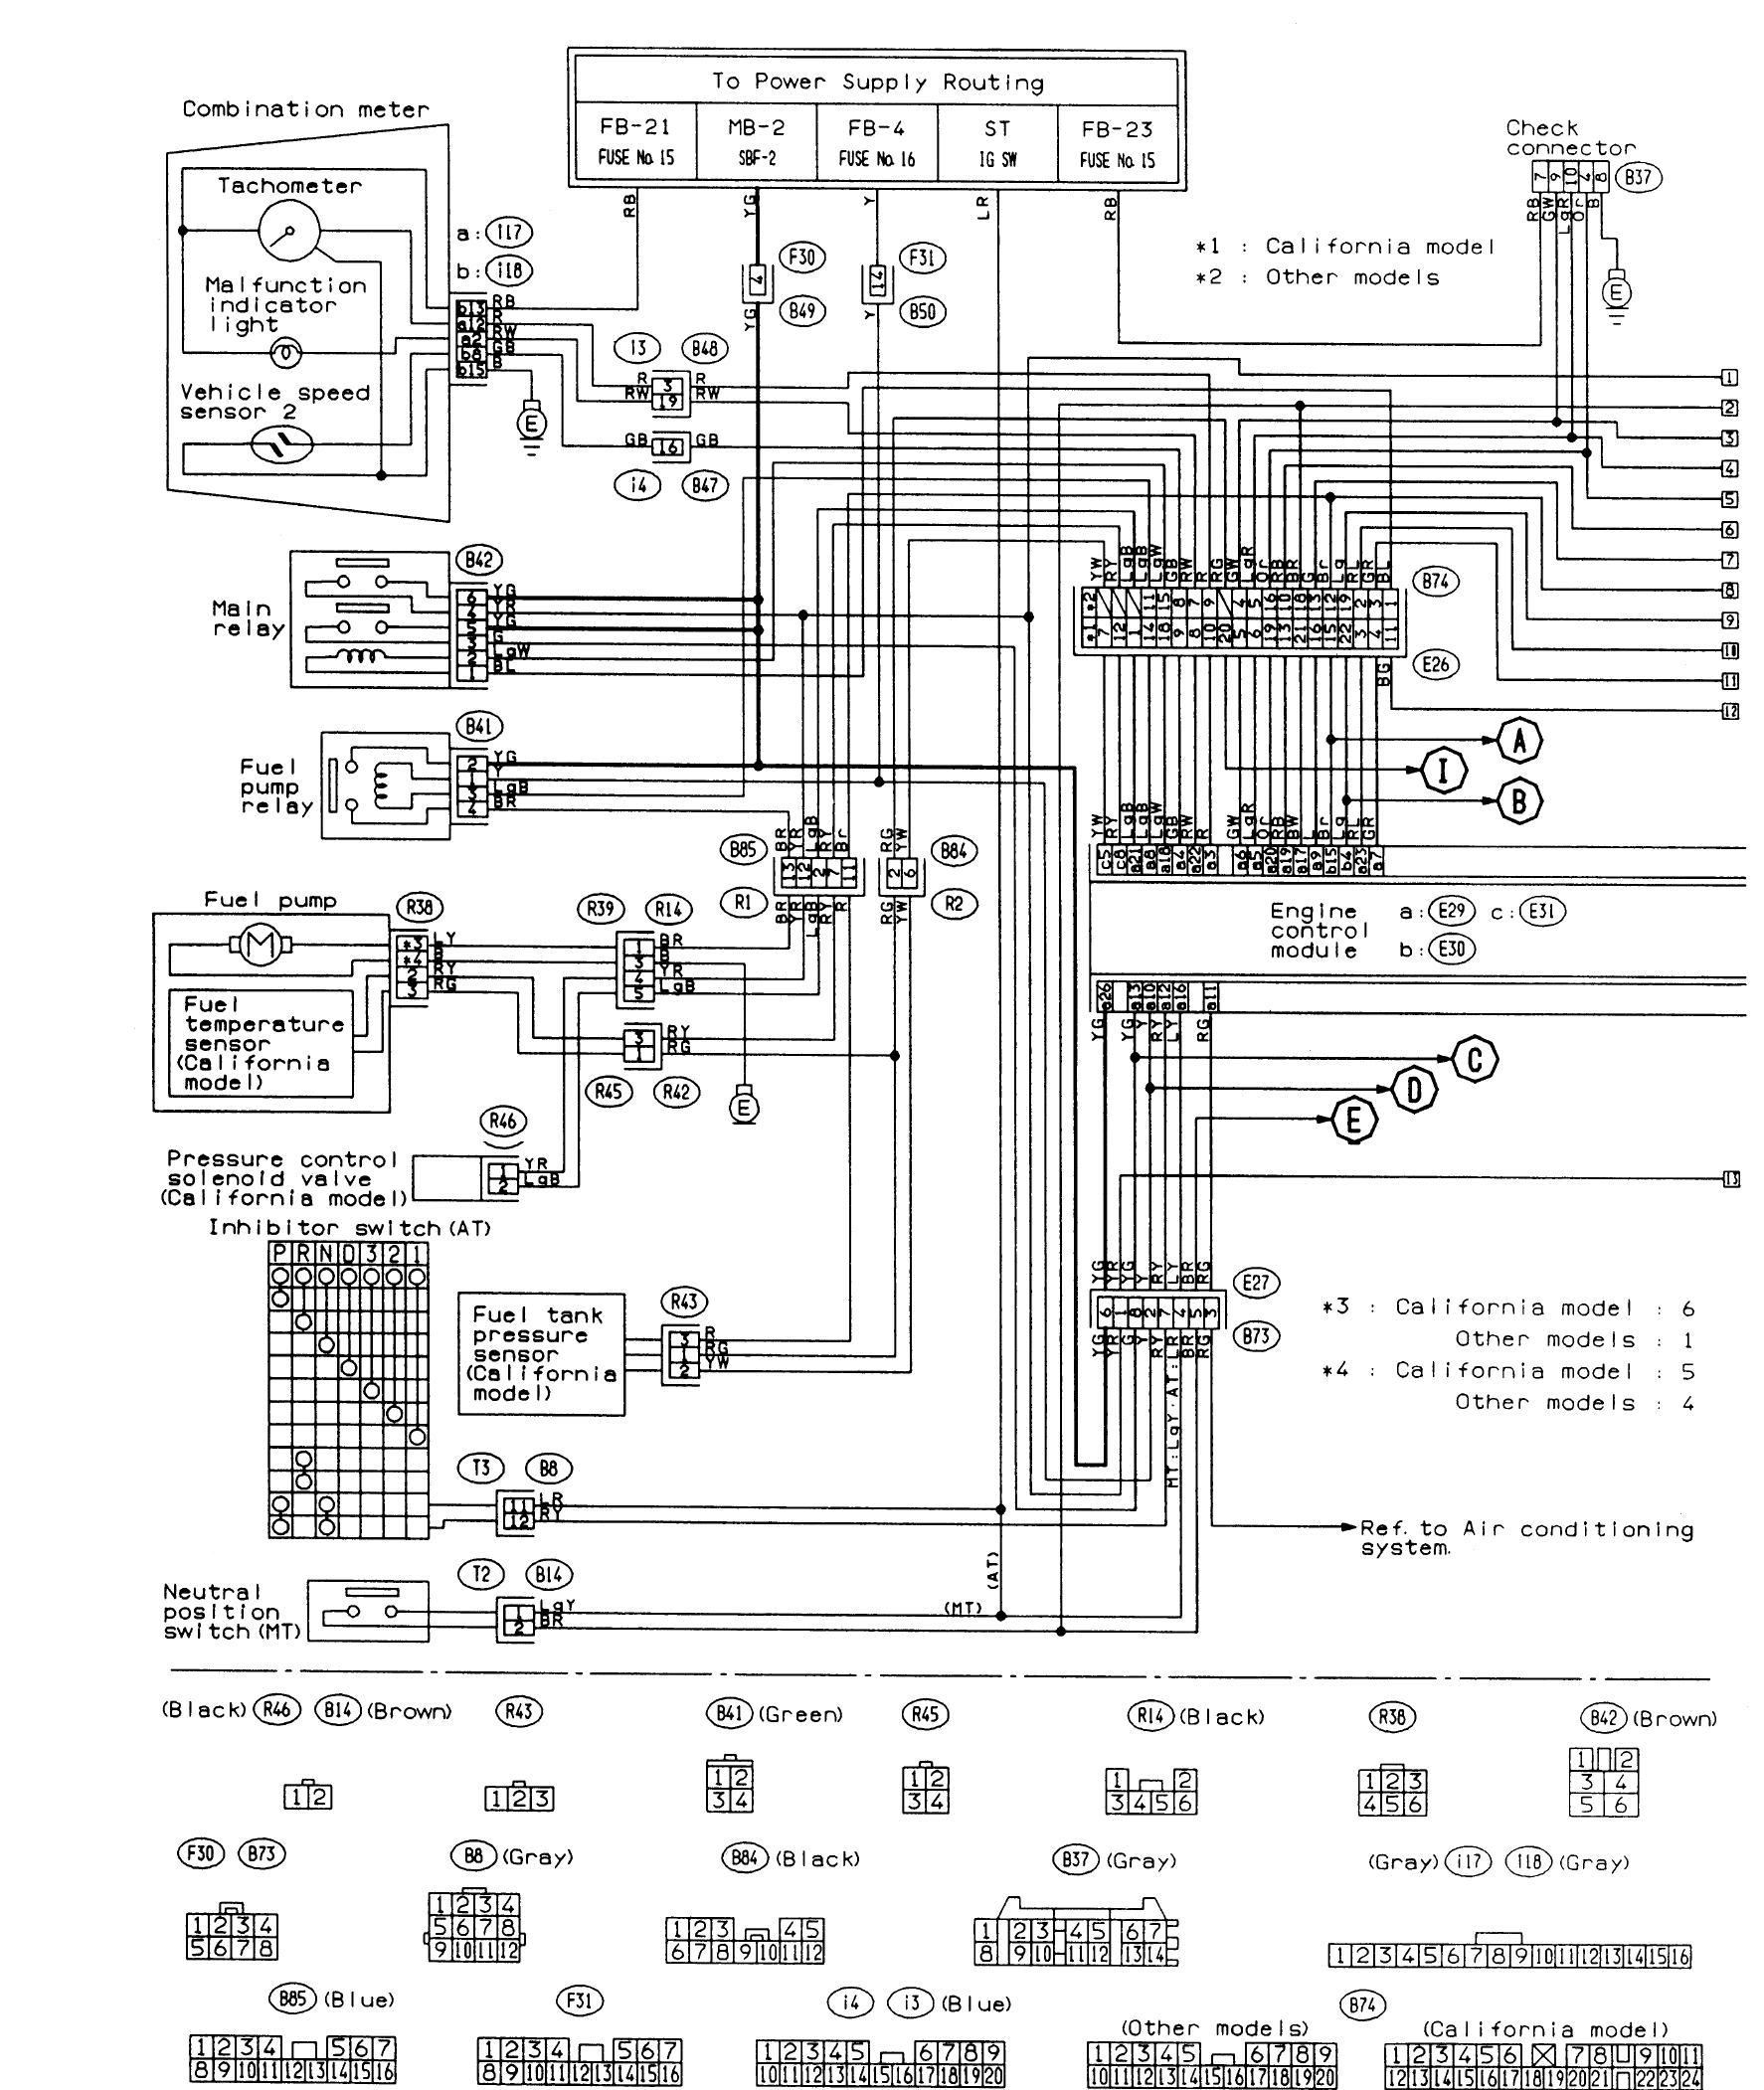 subaru ecu wiring diagram FUSlrCX subaru wiring diagrams 1992 subaru legacy heater wiring schematic subaru vanagon conversion wiring diagrams at mifinder.co